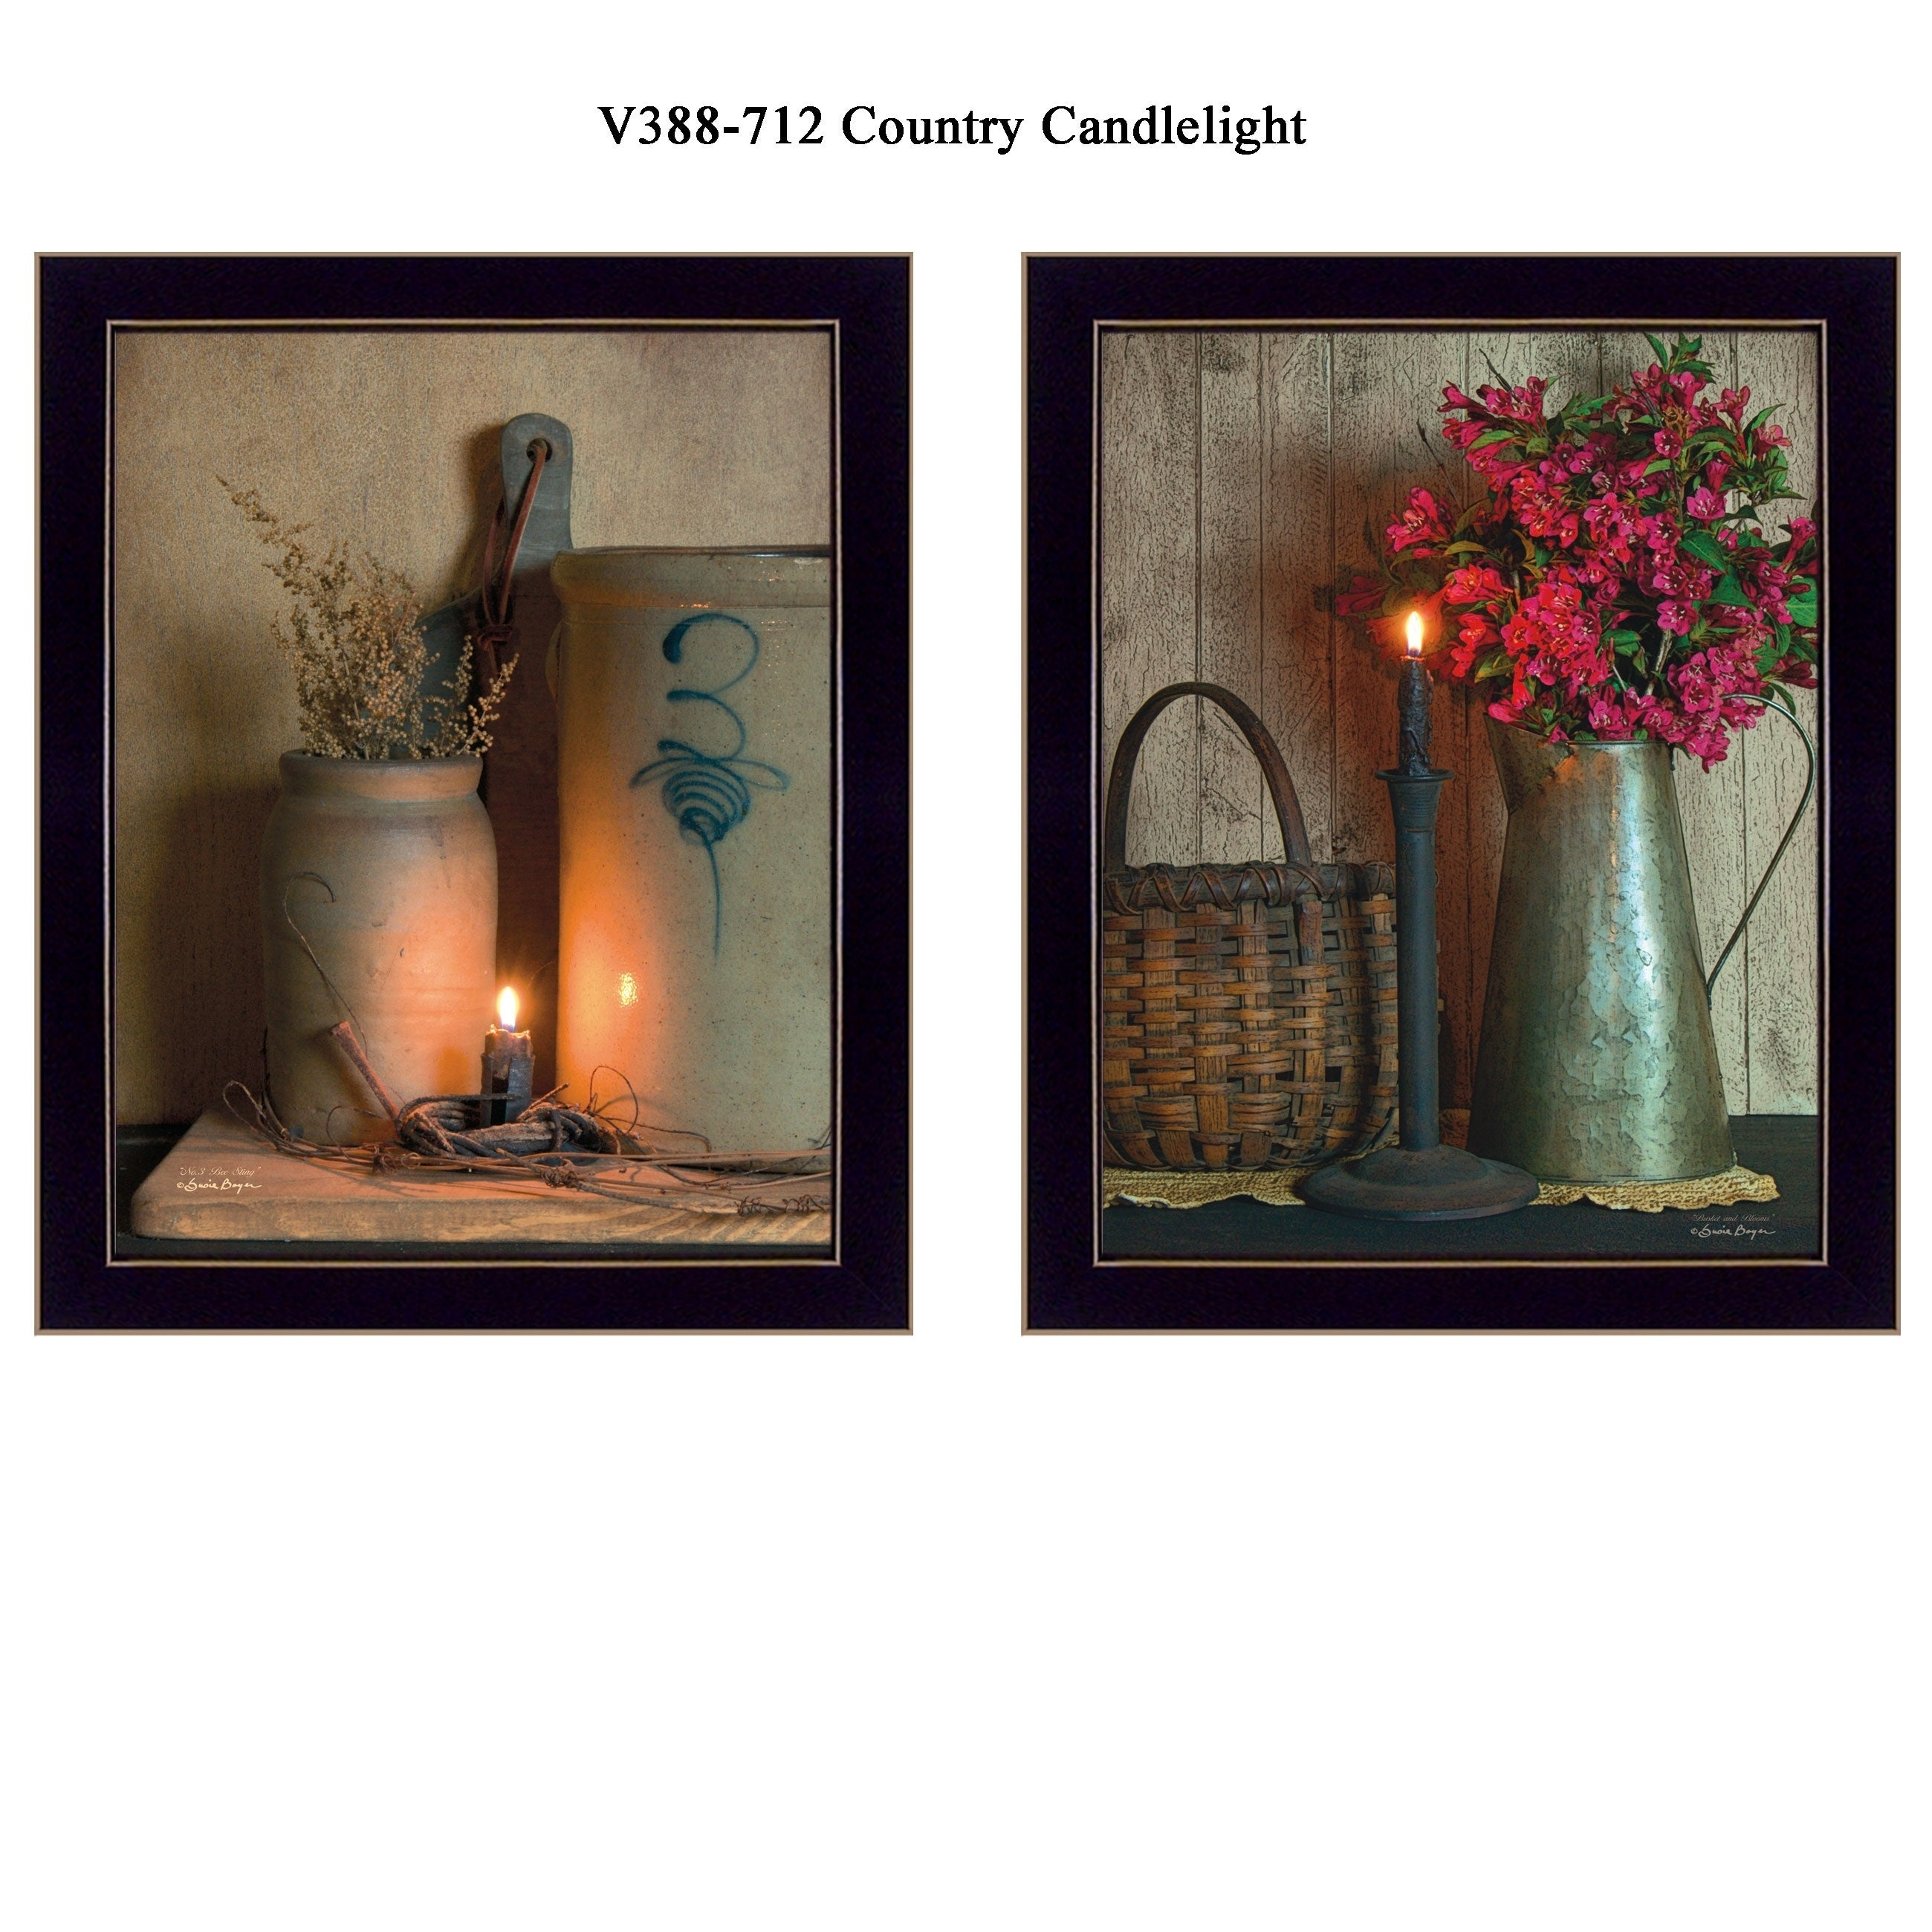 Country candlelight collection by susan boyer printed wall art country candlelight collection by susan boyer printed wall art ready to hang framed poster black frame free shipping today overstock 24362405 jeuxipadfo Choice Image